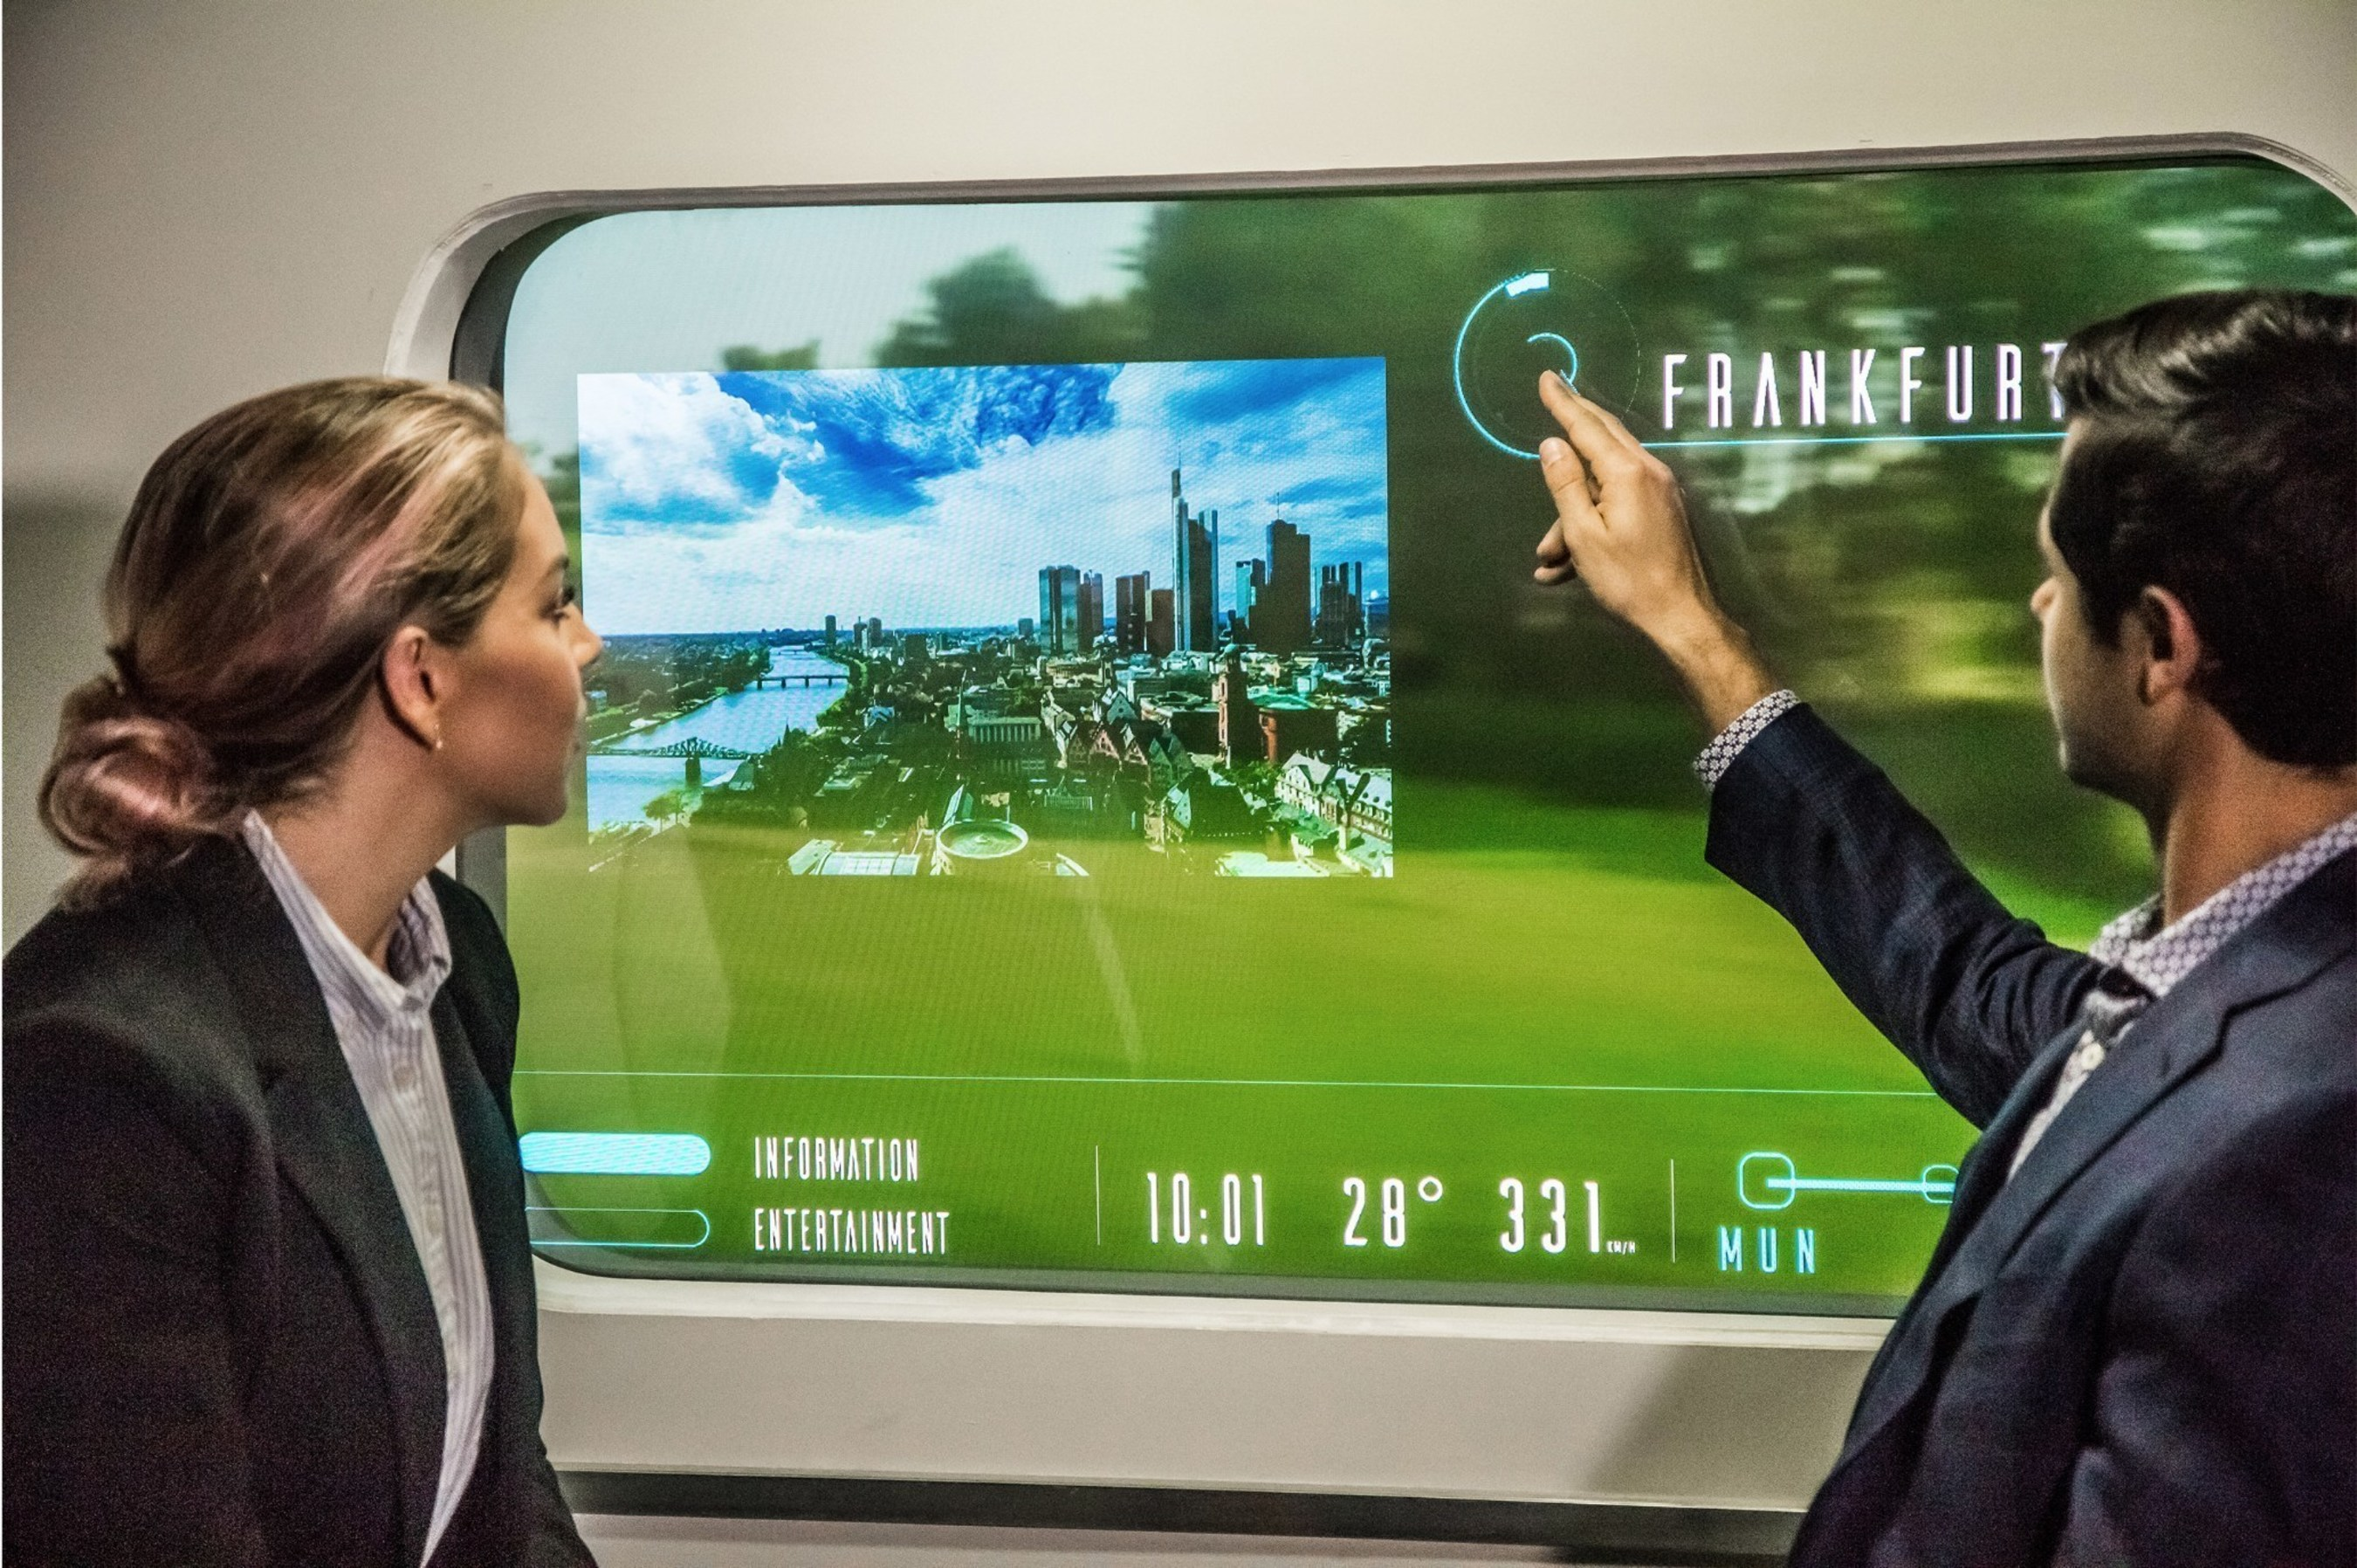 Hyperloop Augmented Reality Windows for the Innovation Train